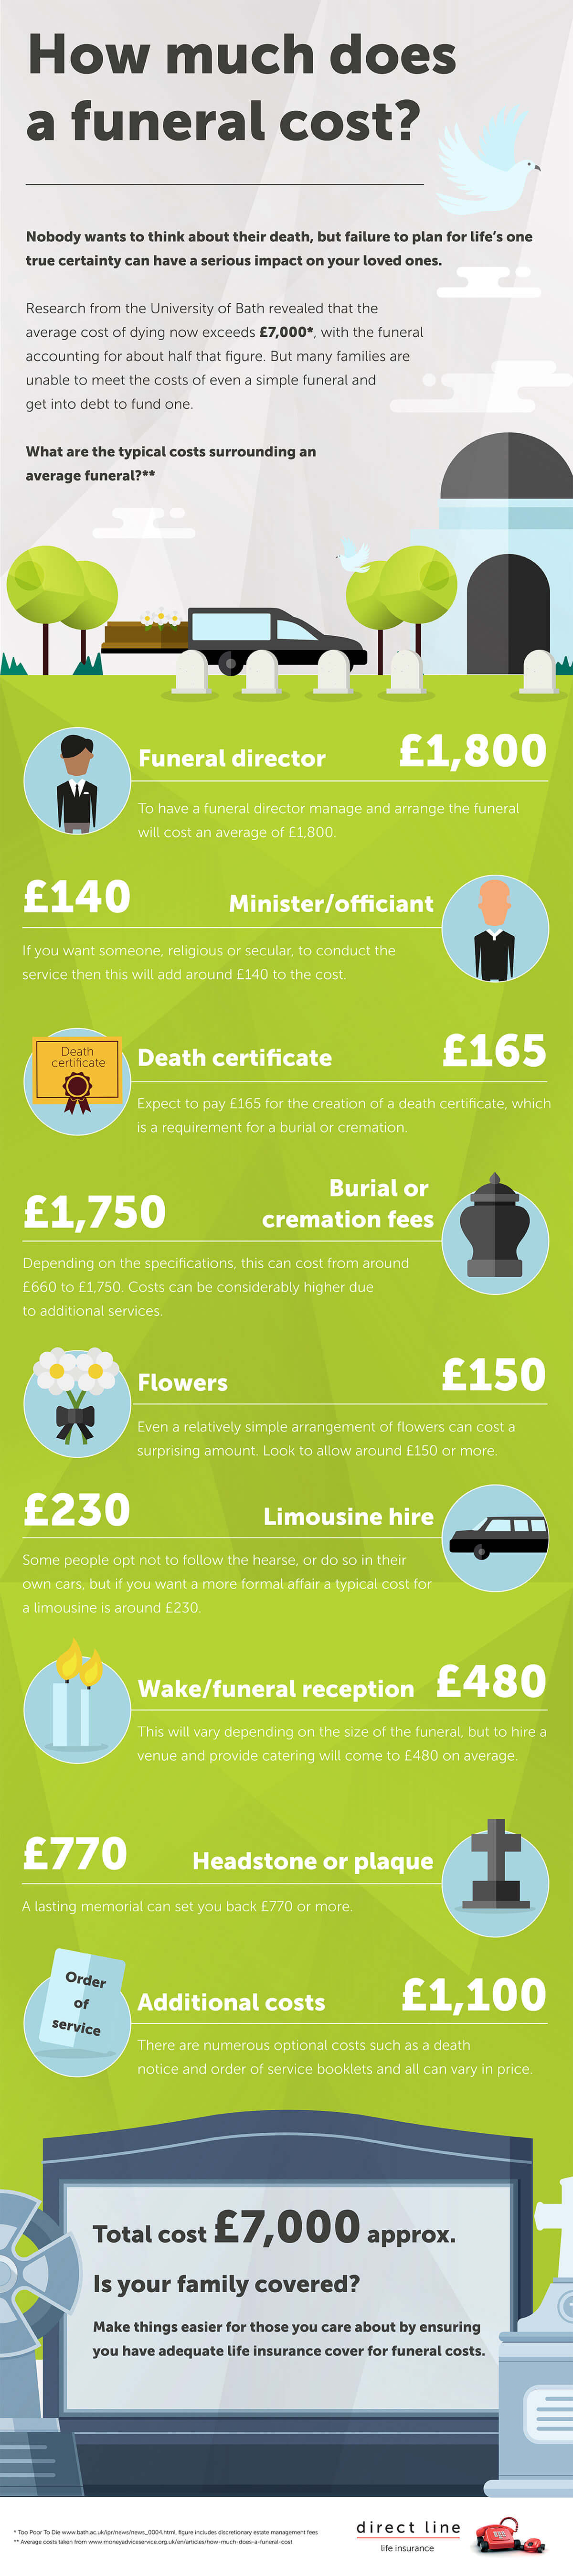 How Much Does A Funeral Cost Infographic Direct Line